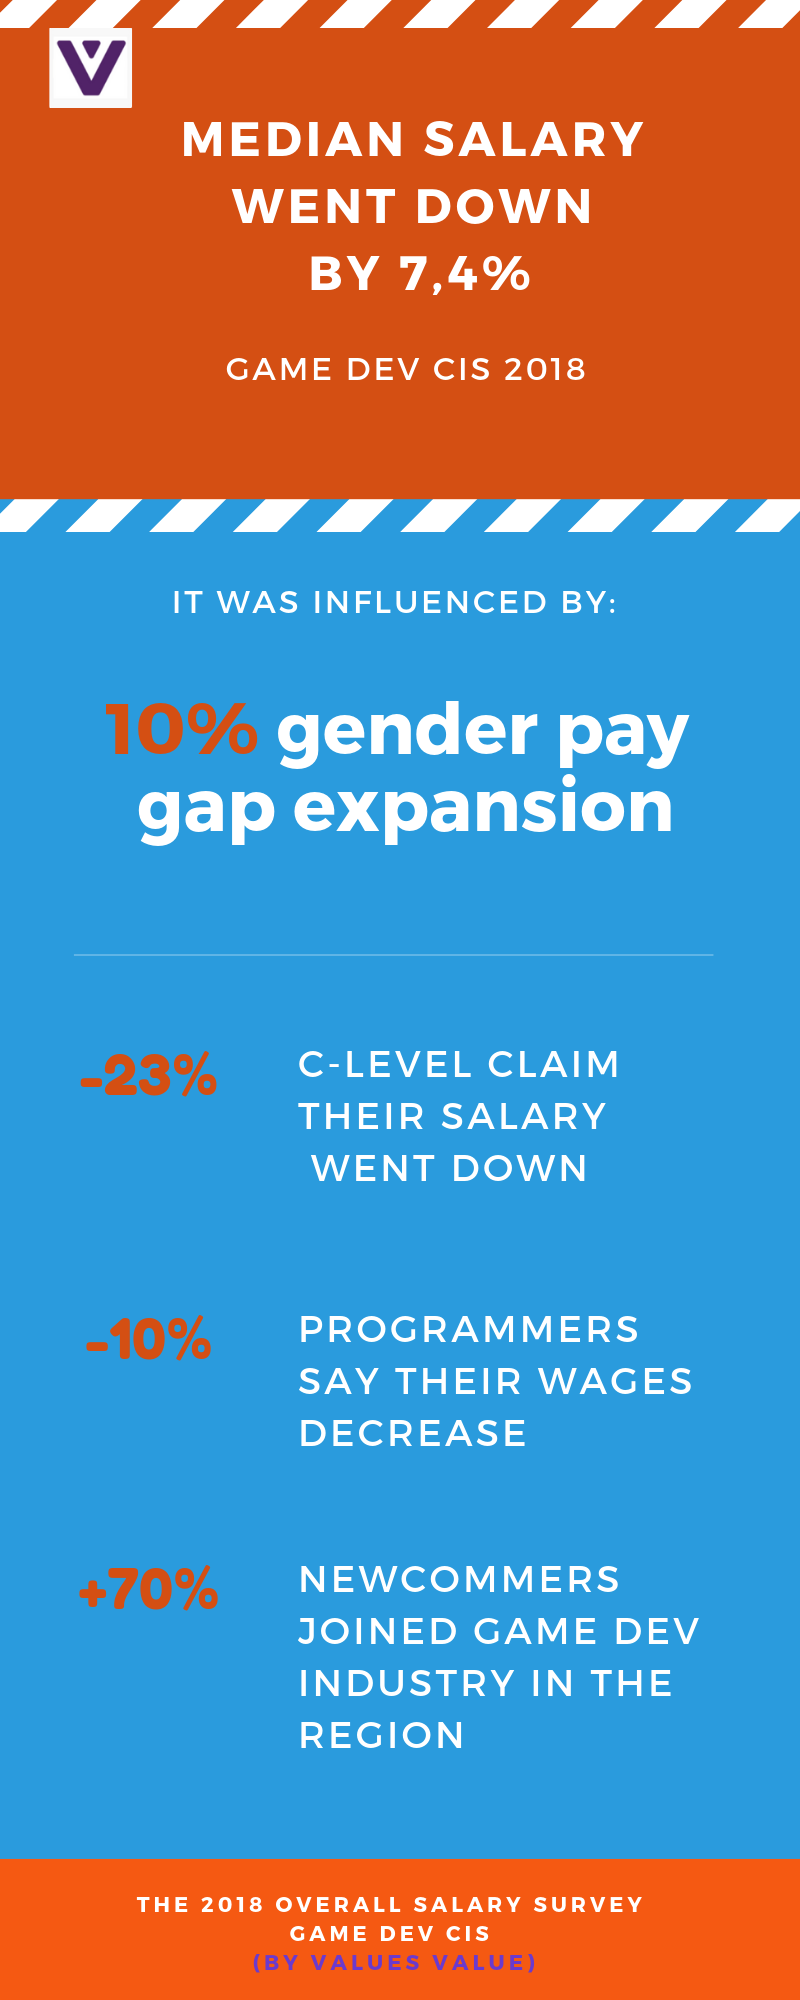 The 2018 Overall Salary Survey: gender pay gap cuts median Game Dev salary by 7.4% in CIS region